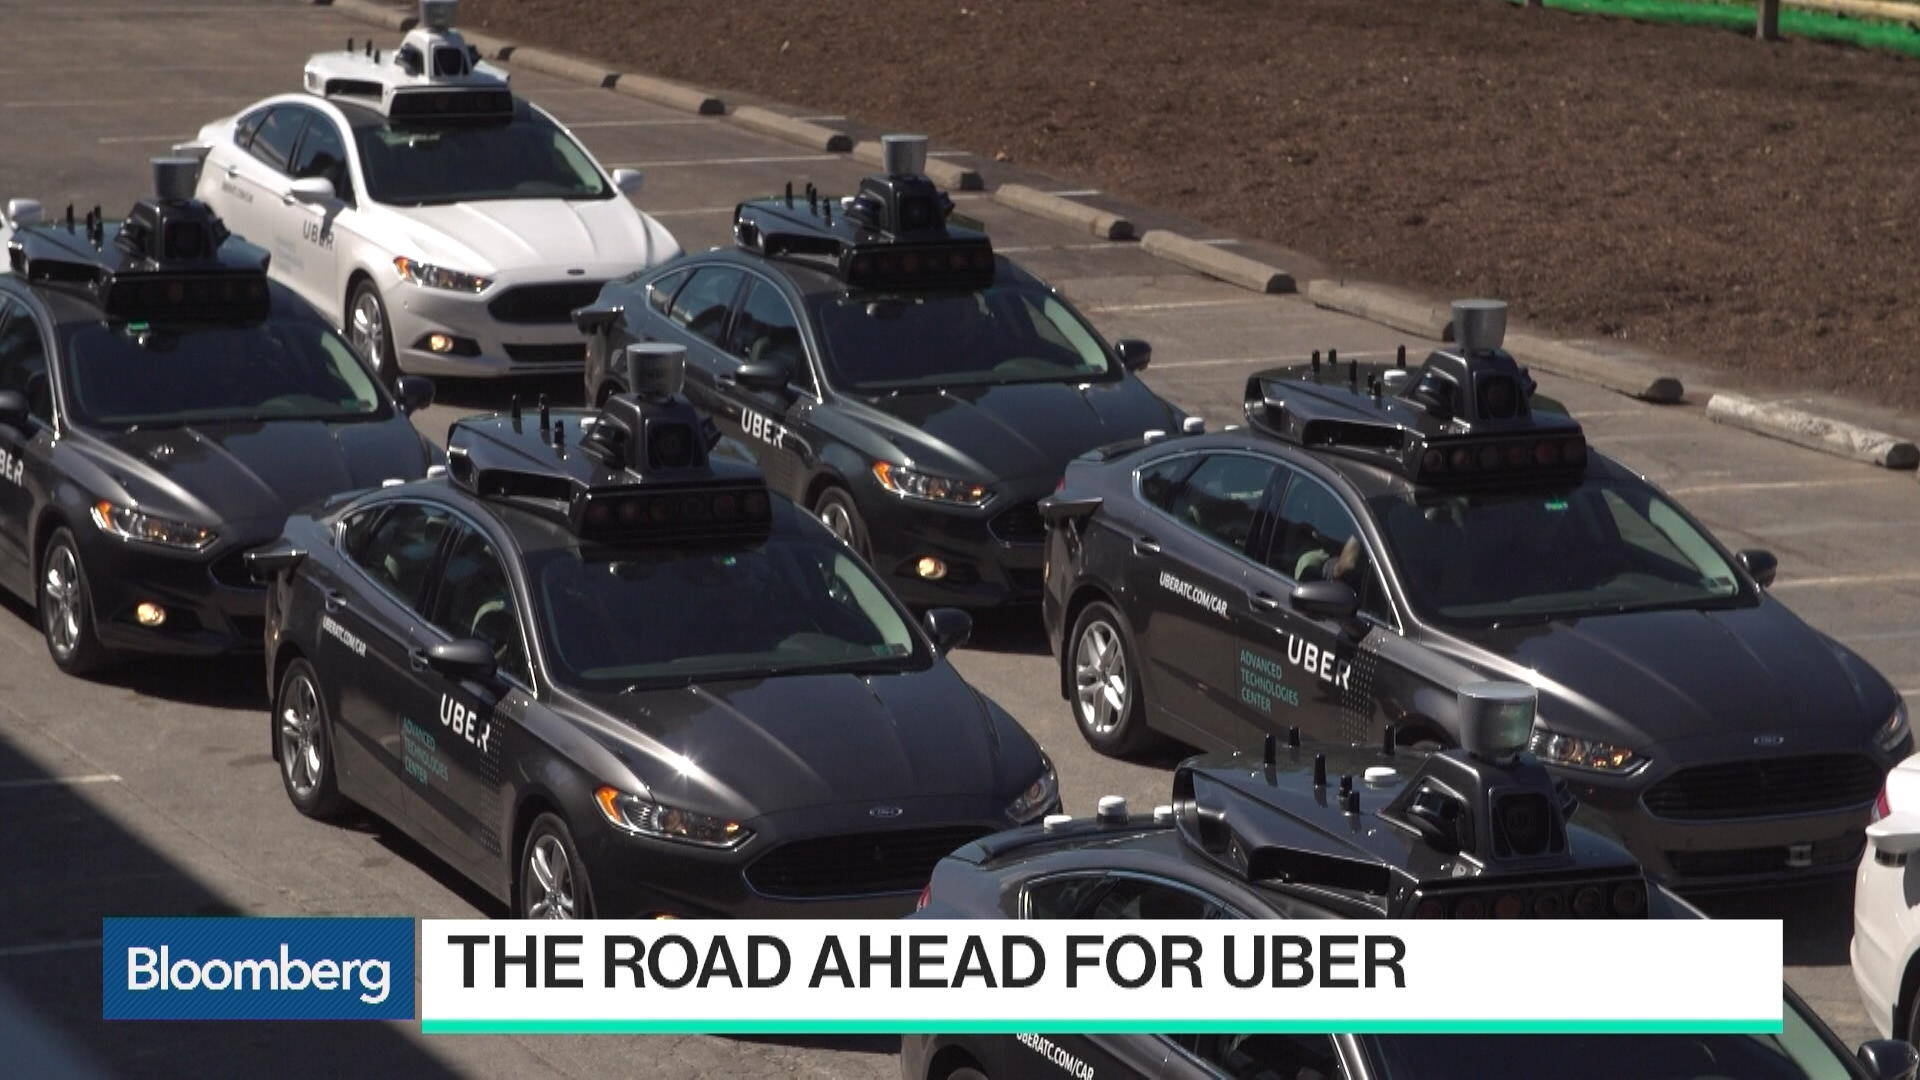 Ca Dmv Says Uber Breaks Law With Self Driving Cars Bloomberg